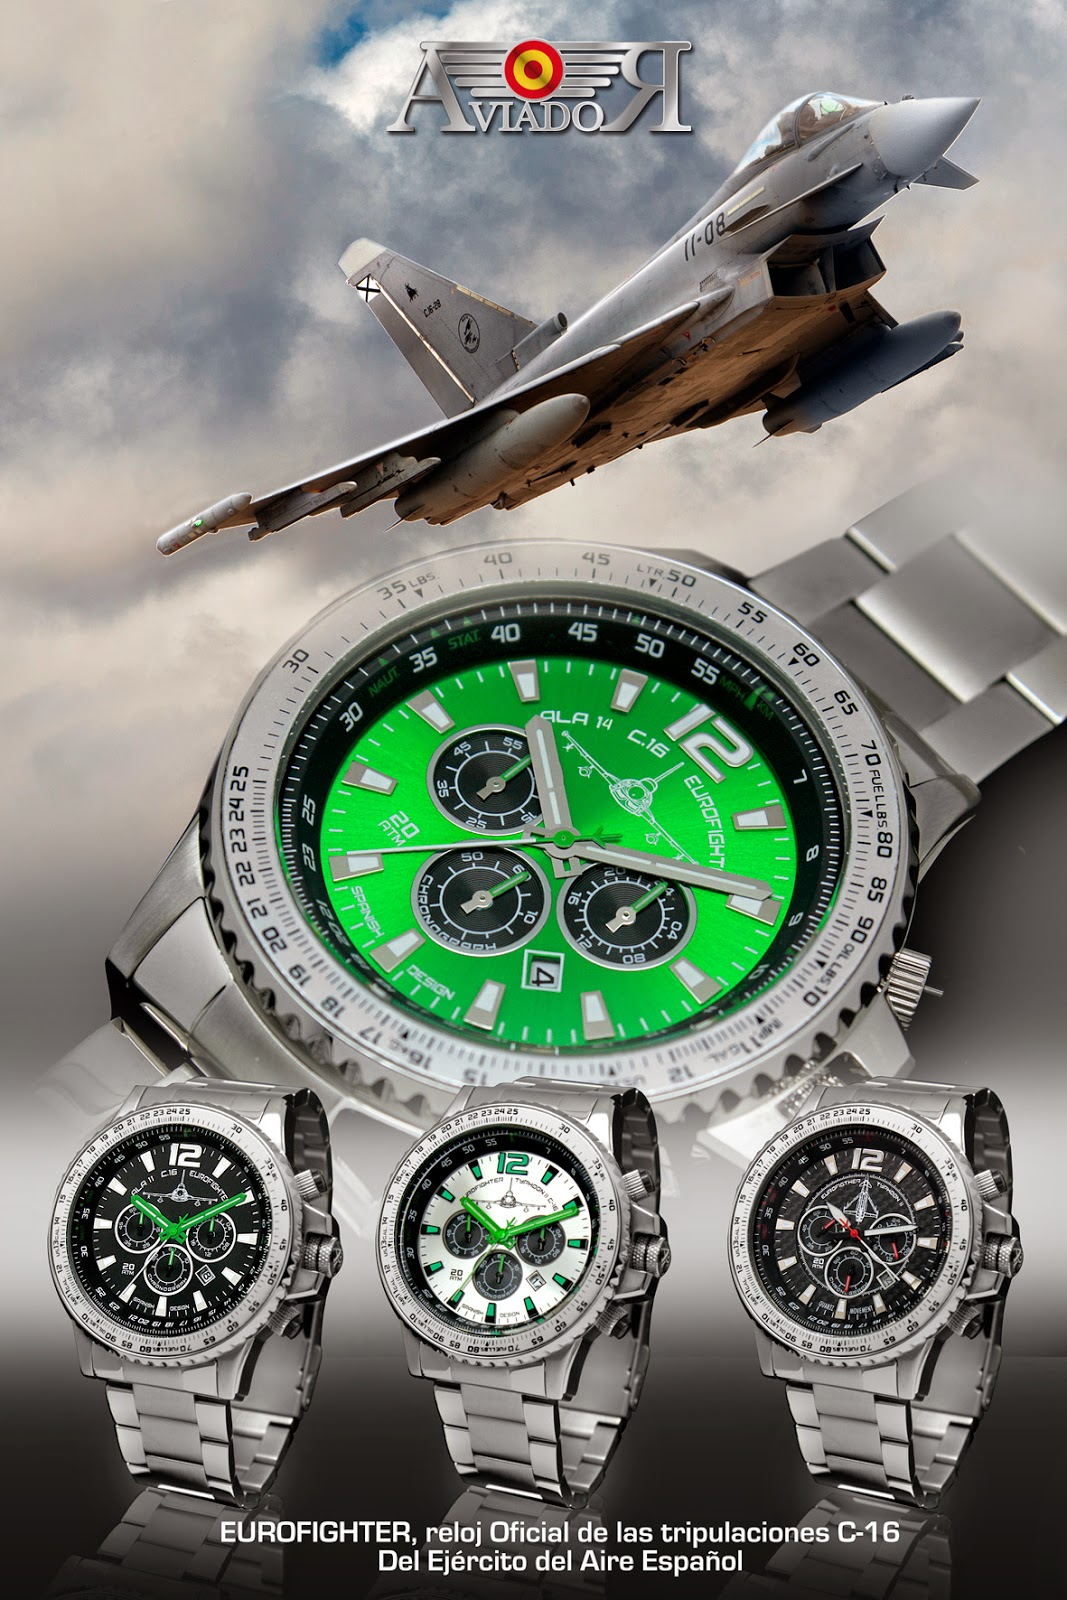 Aviador, Aviador Watch, Complementos, cronógrafo, Ejército del Aire, EuroFighter, lifestyle, menswear, relojes, Suits and Shirts, watches,